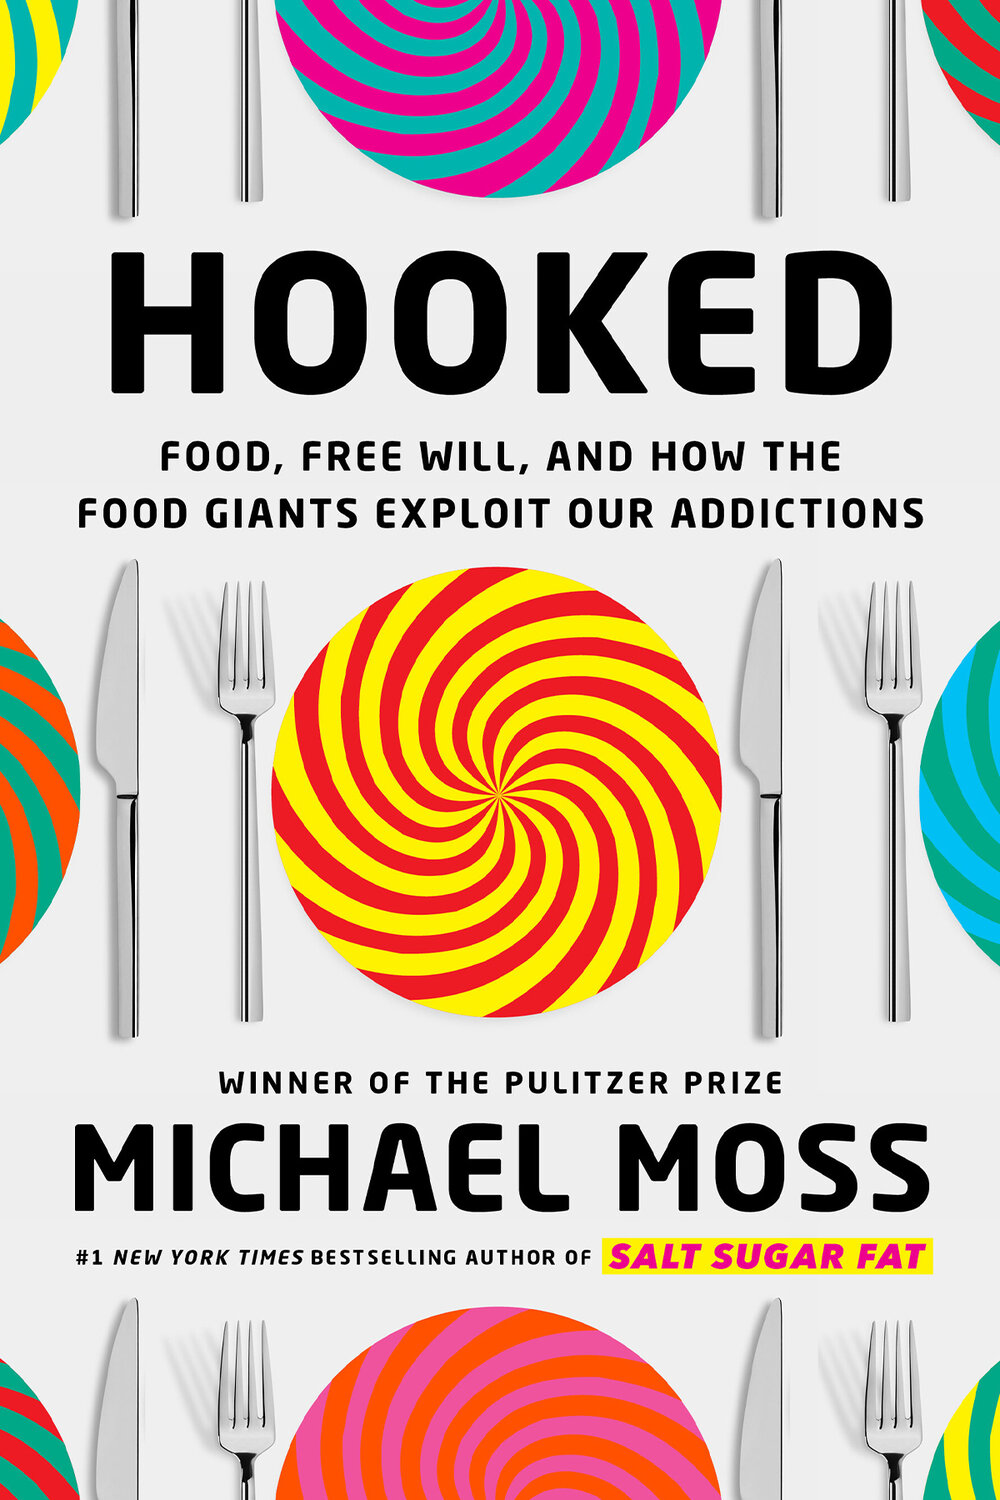 Hooked: Food, Free Will, and How the Food Giants Exploit Our Addictions by Michael Moss